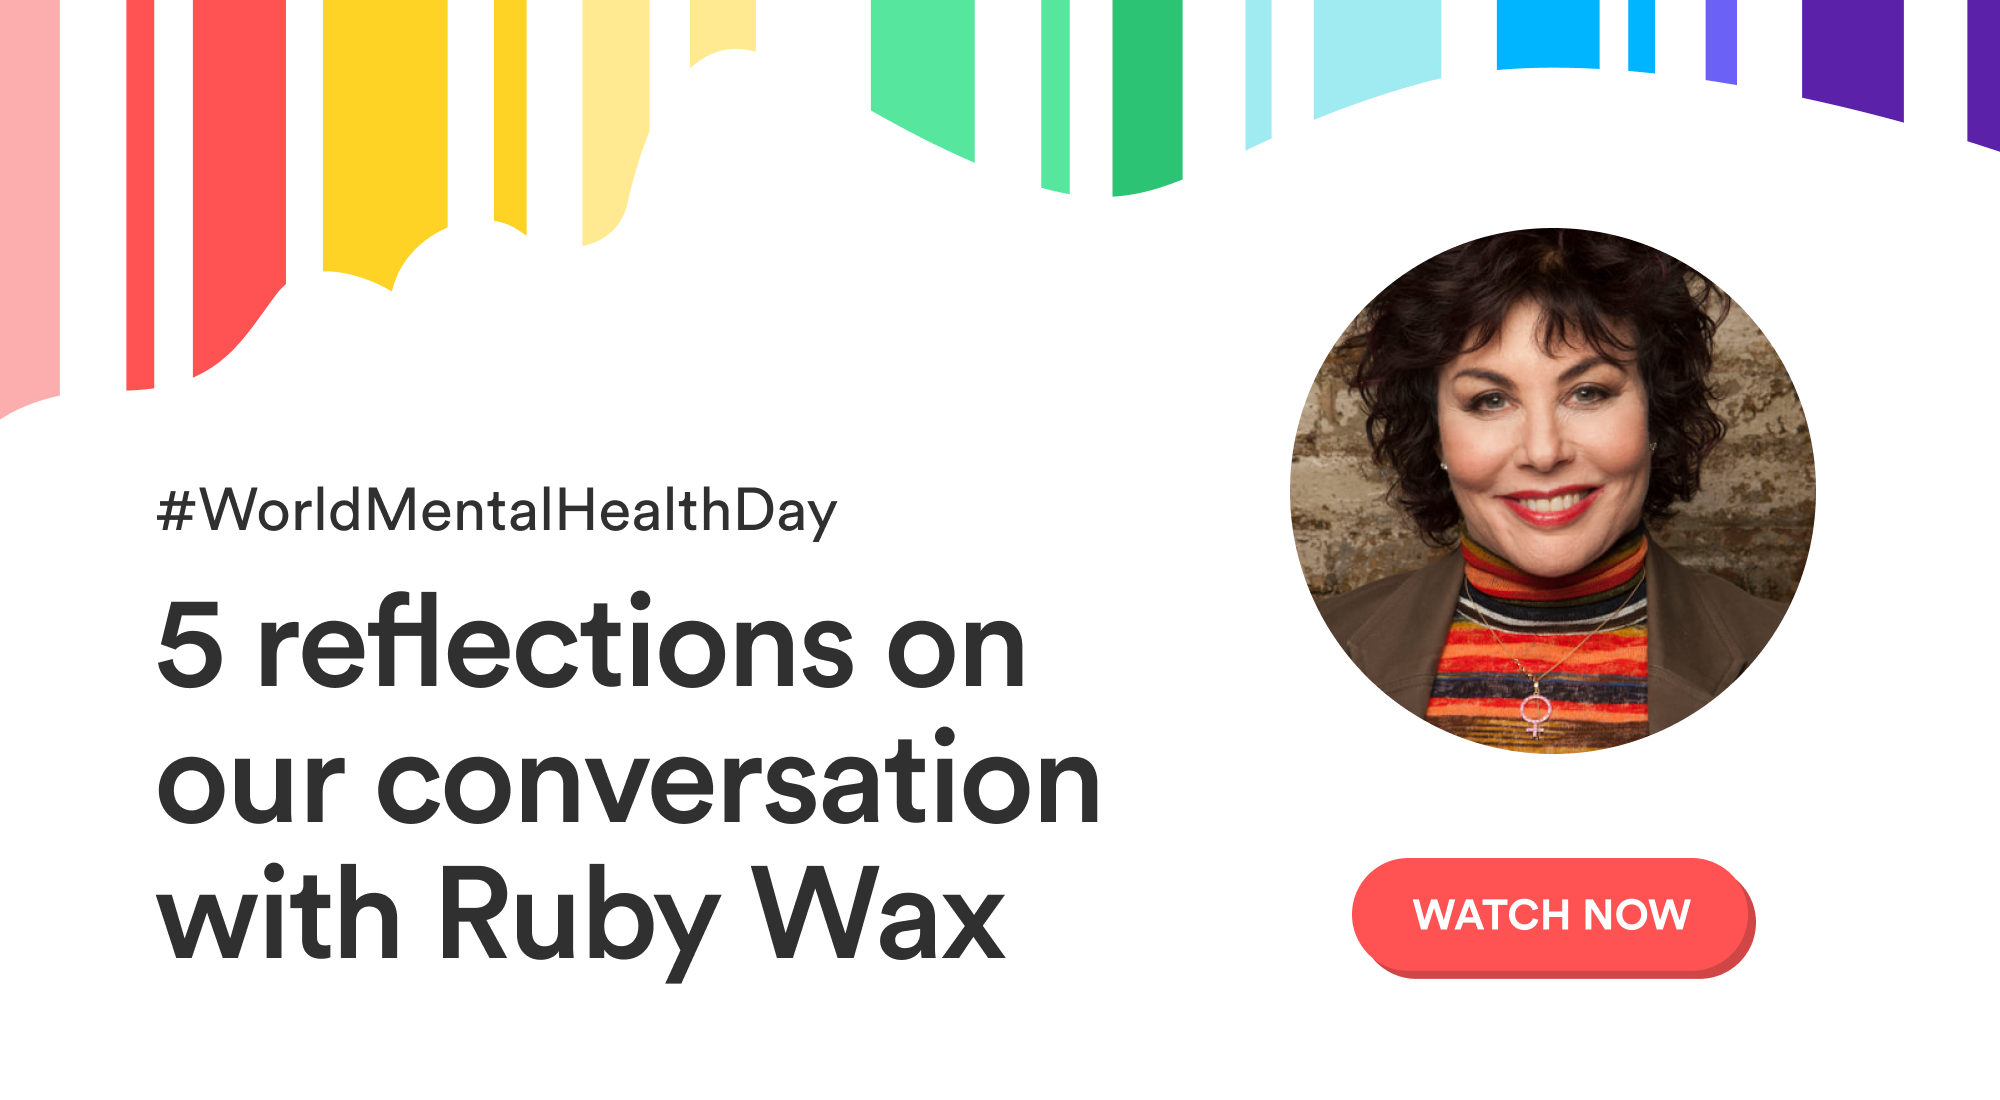 5 reflections on our conversation with Ruby Wax